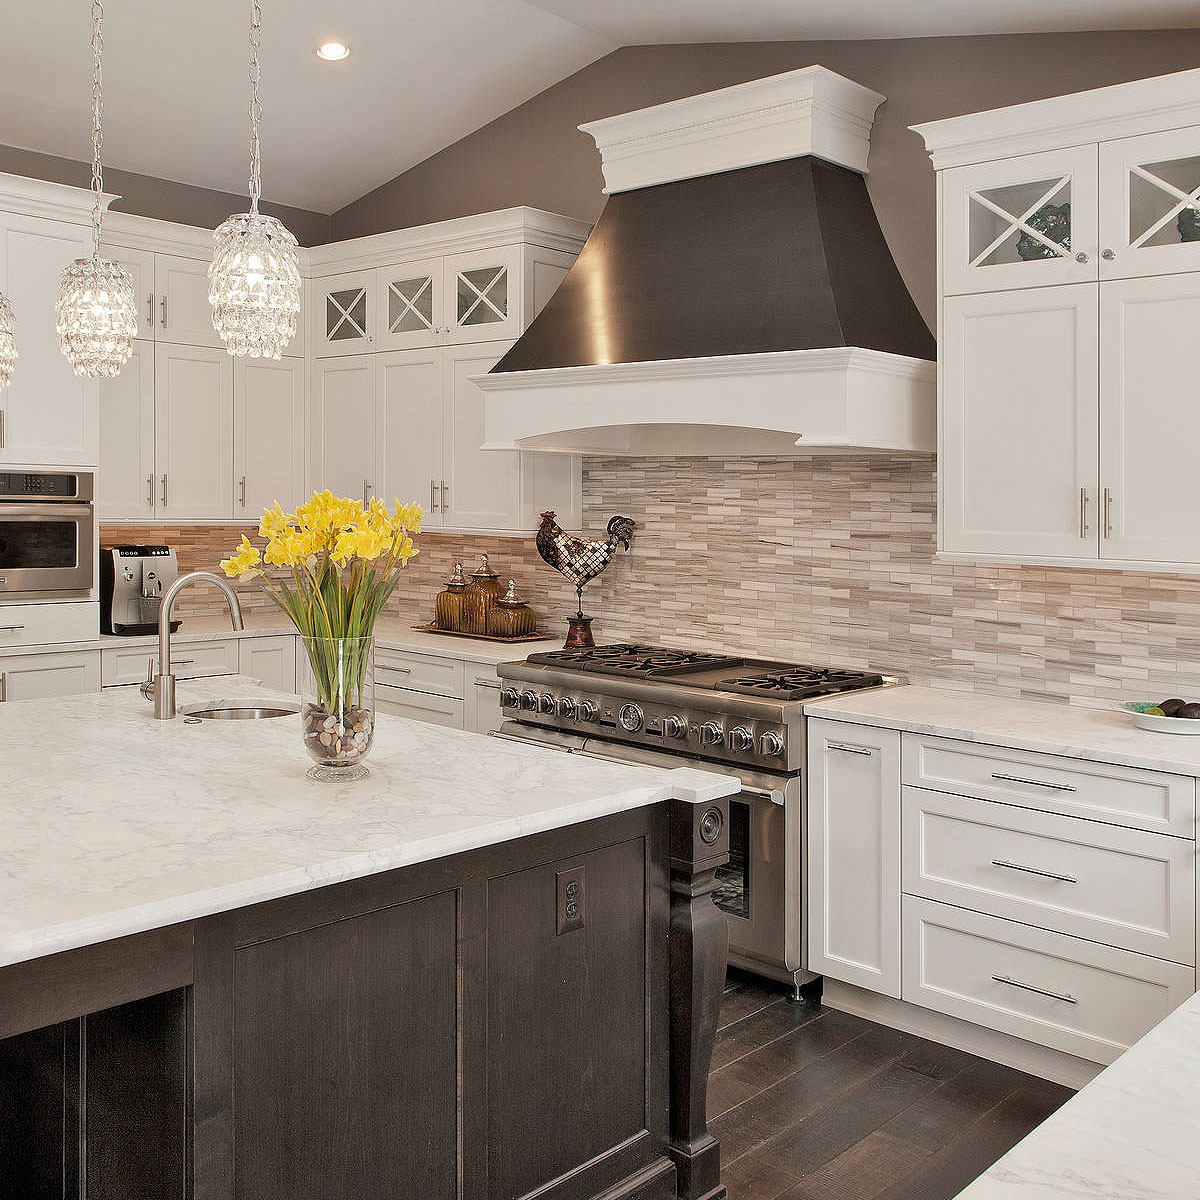 BACKSPLASHcom Best Kitchen Backsplash Ideas  Top Trends